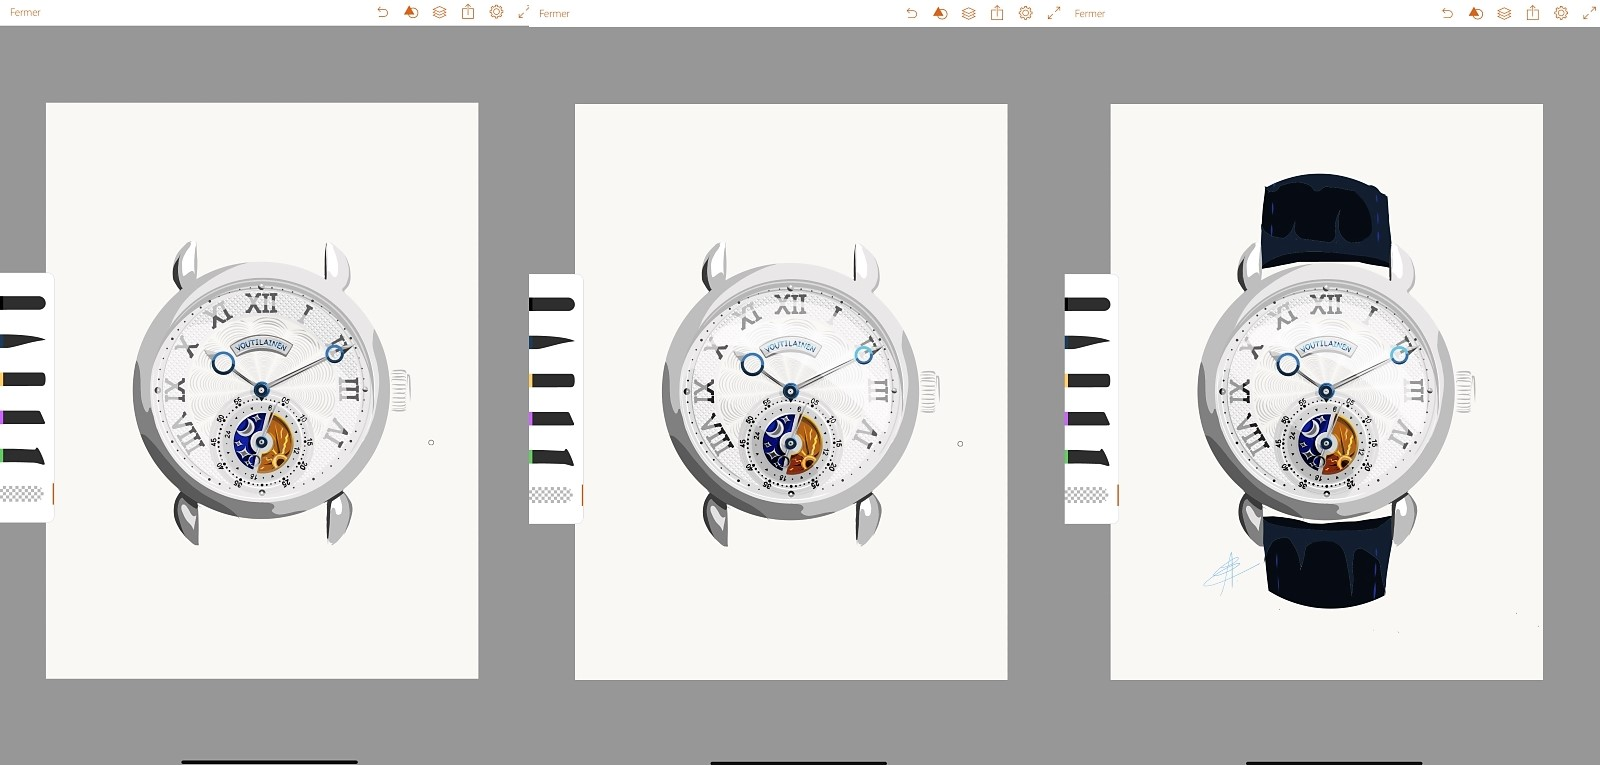 Commissioning Watch Art - Alex Eisenzammer_Designstep 3